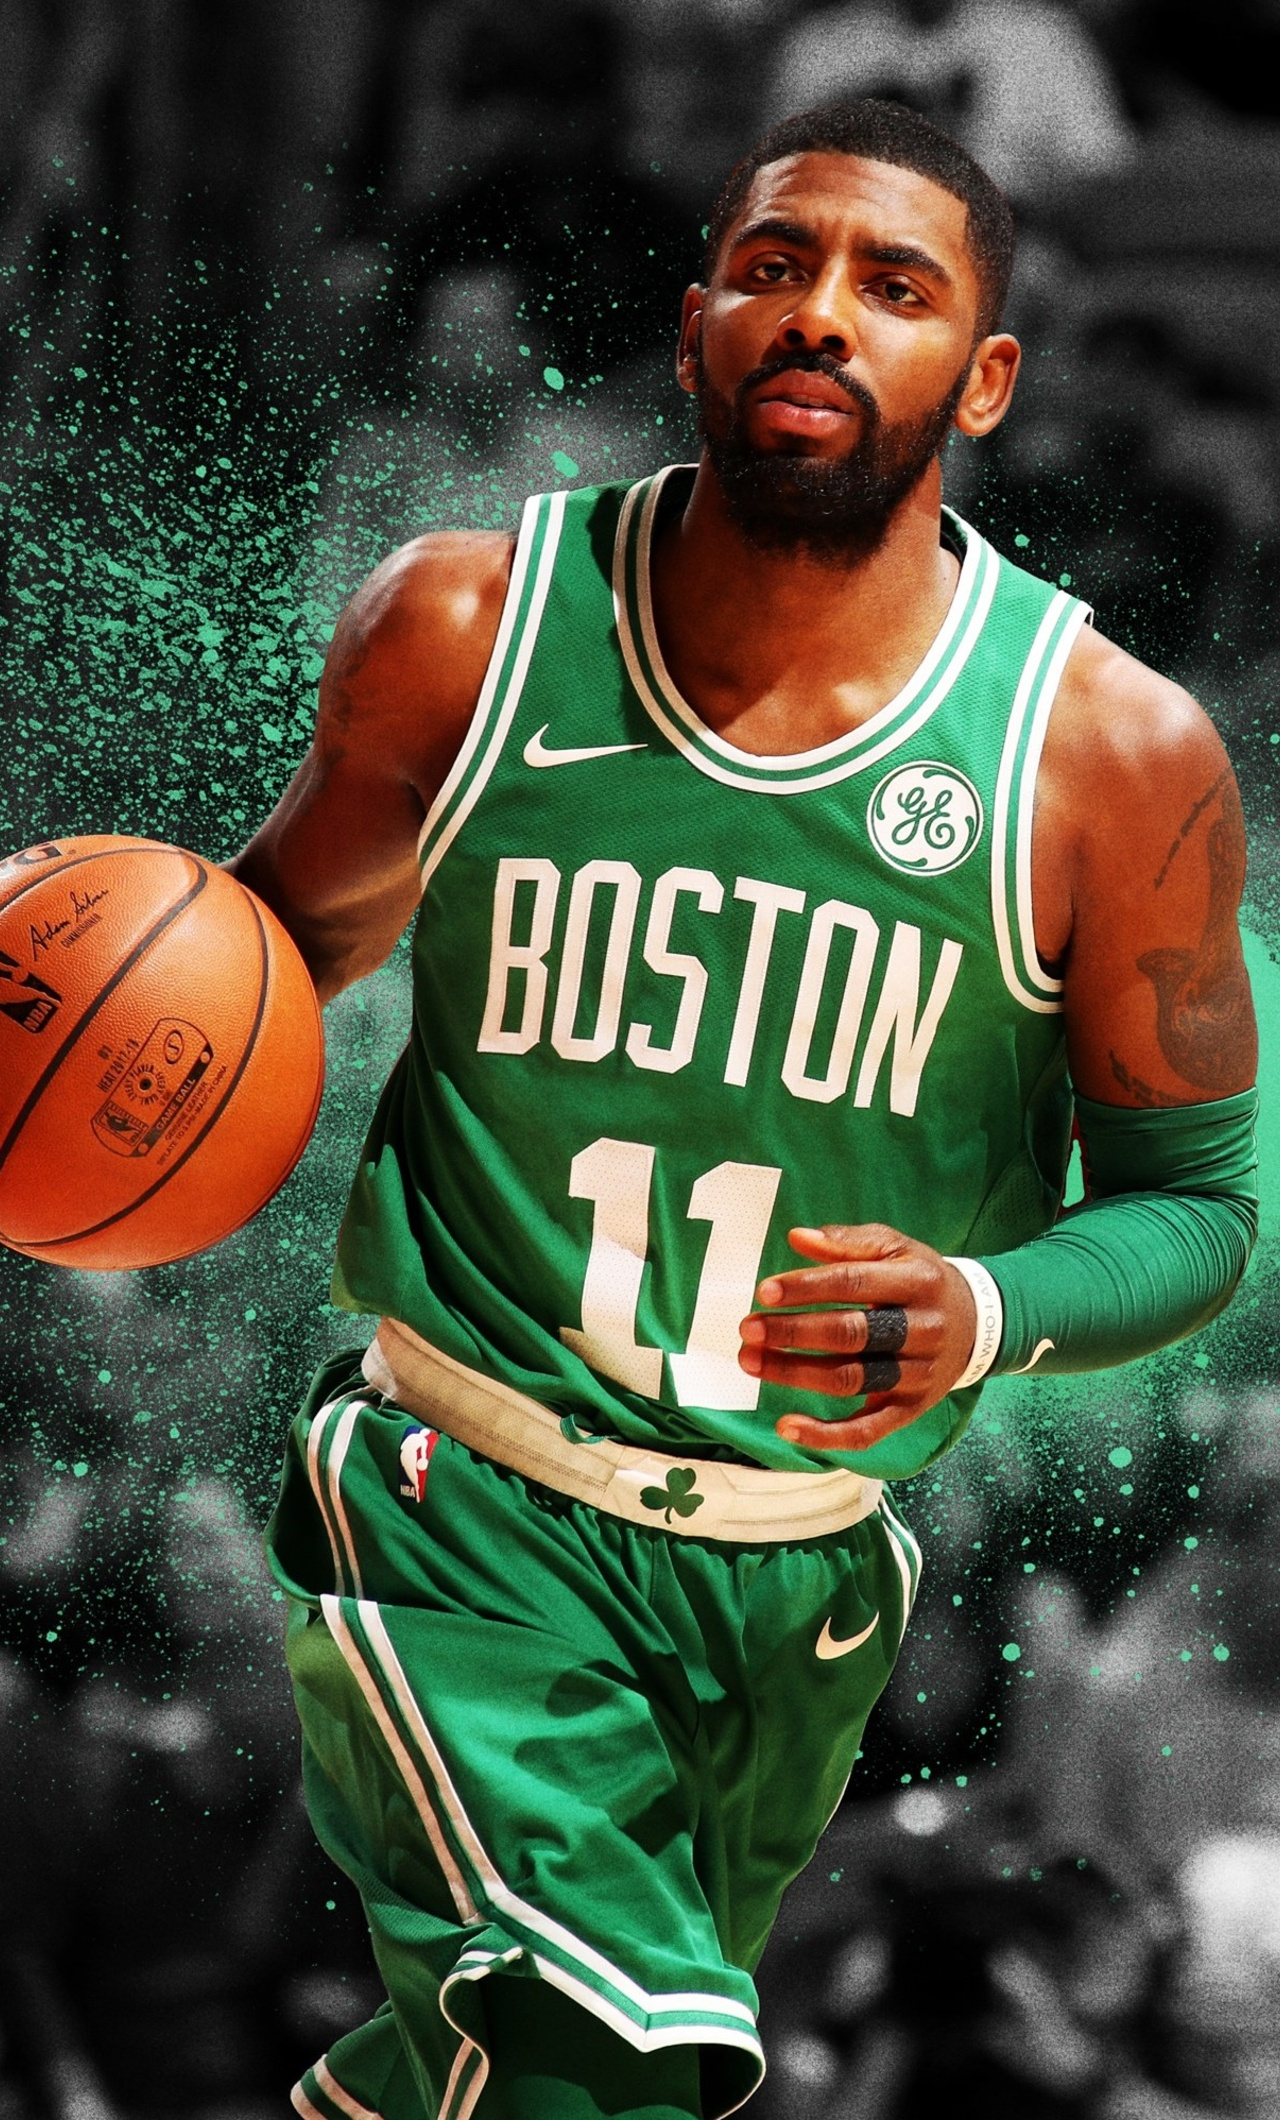 Cute Theme Wallpaper 1280x2120 Kyrie Irving Iphone 6 Hd 4k Wallpapers Images